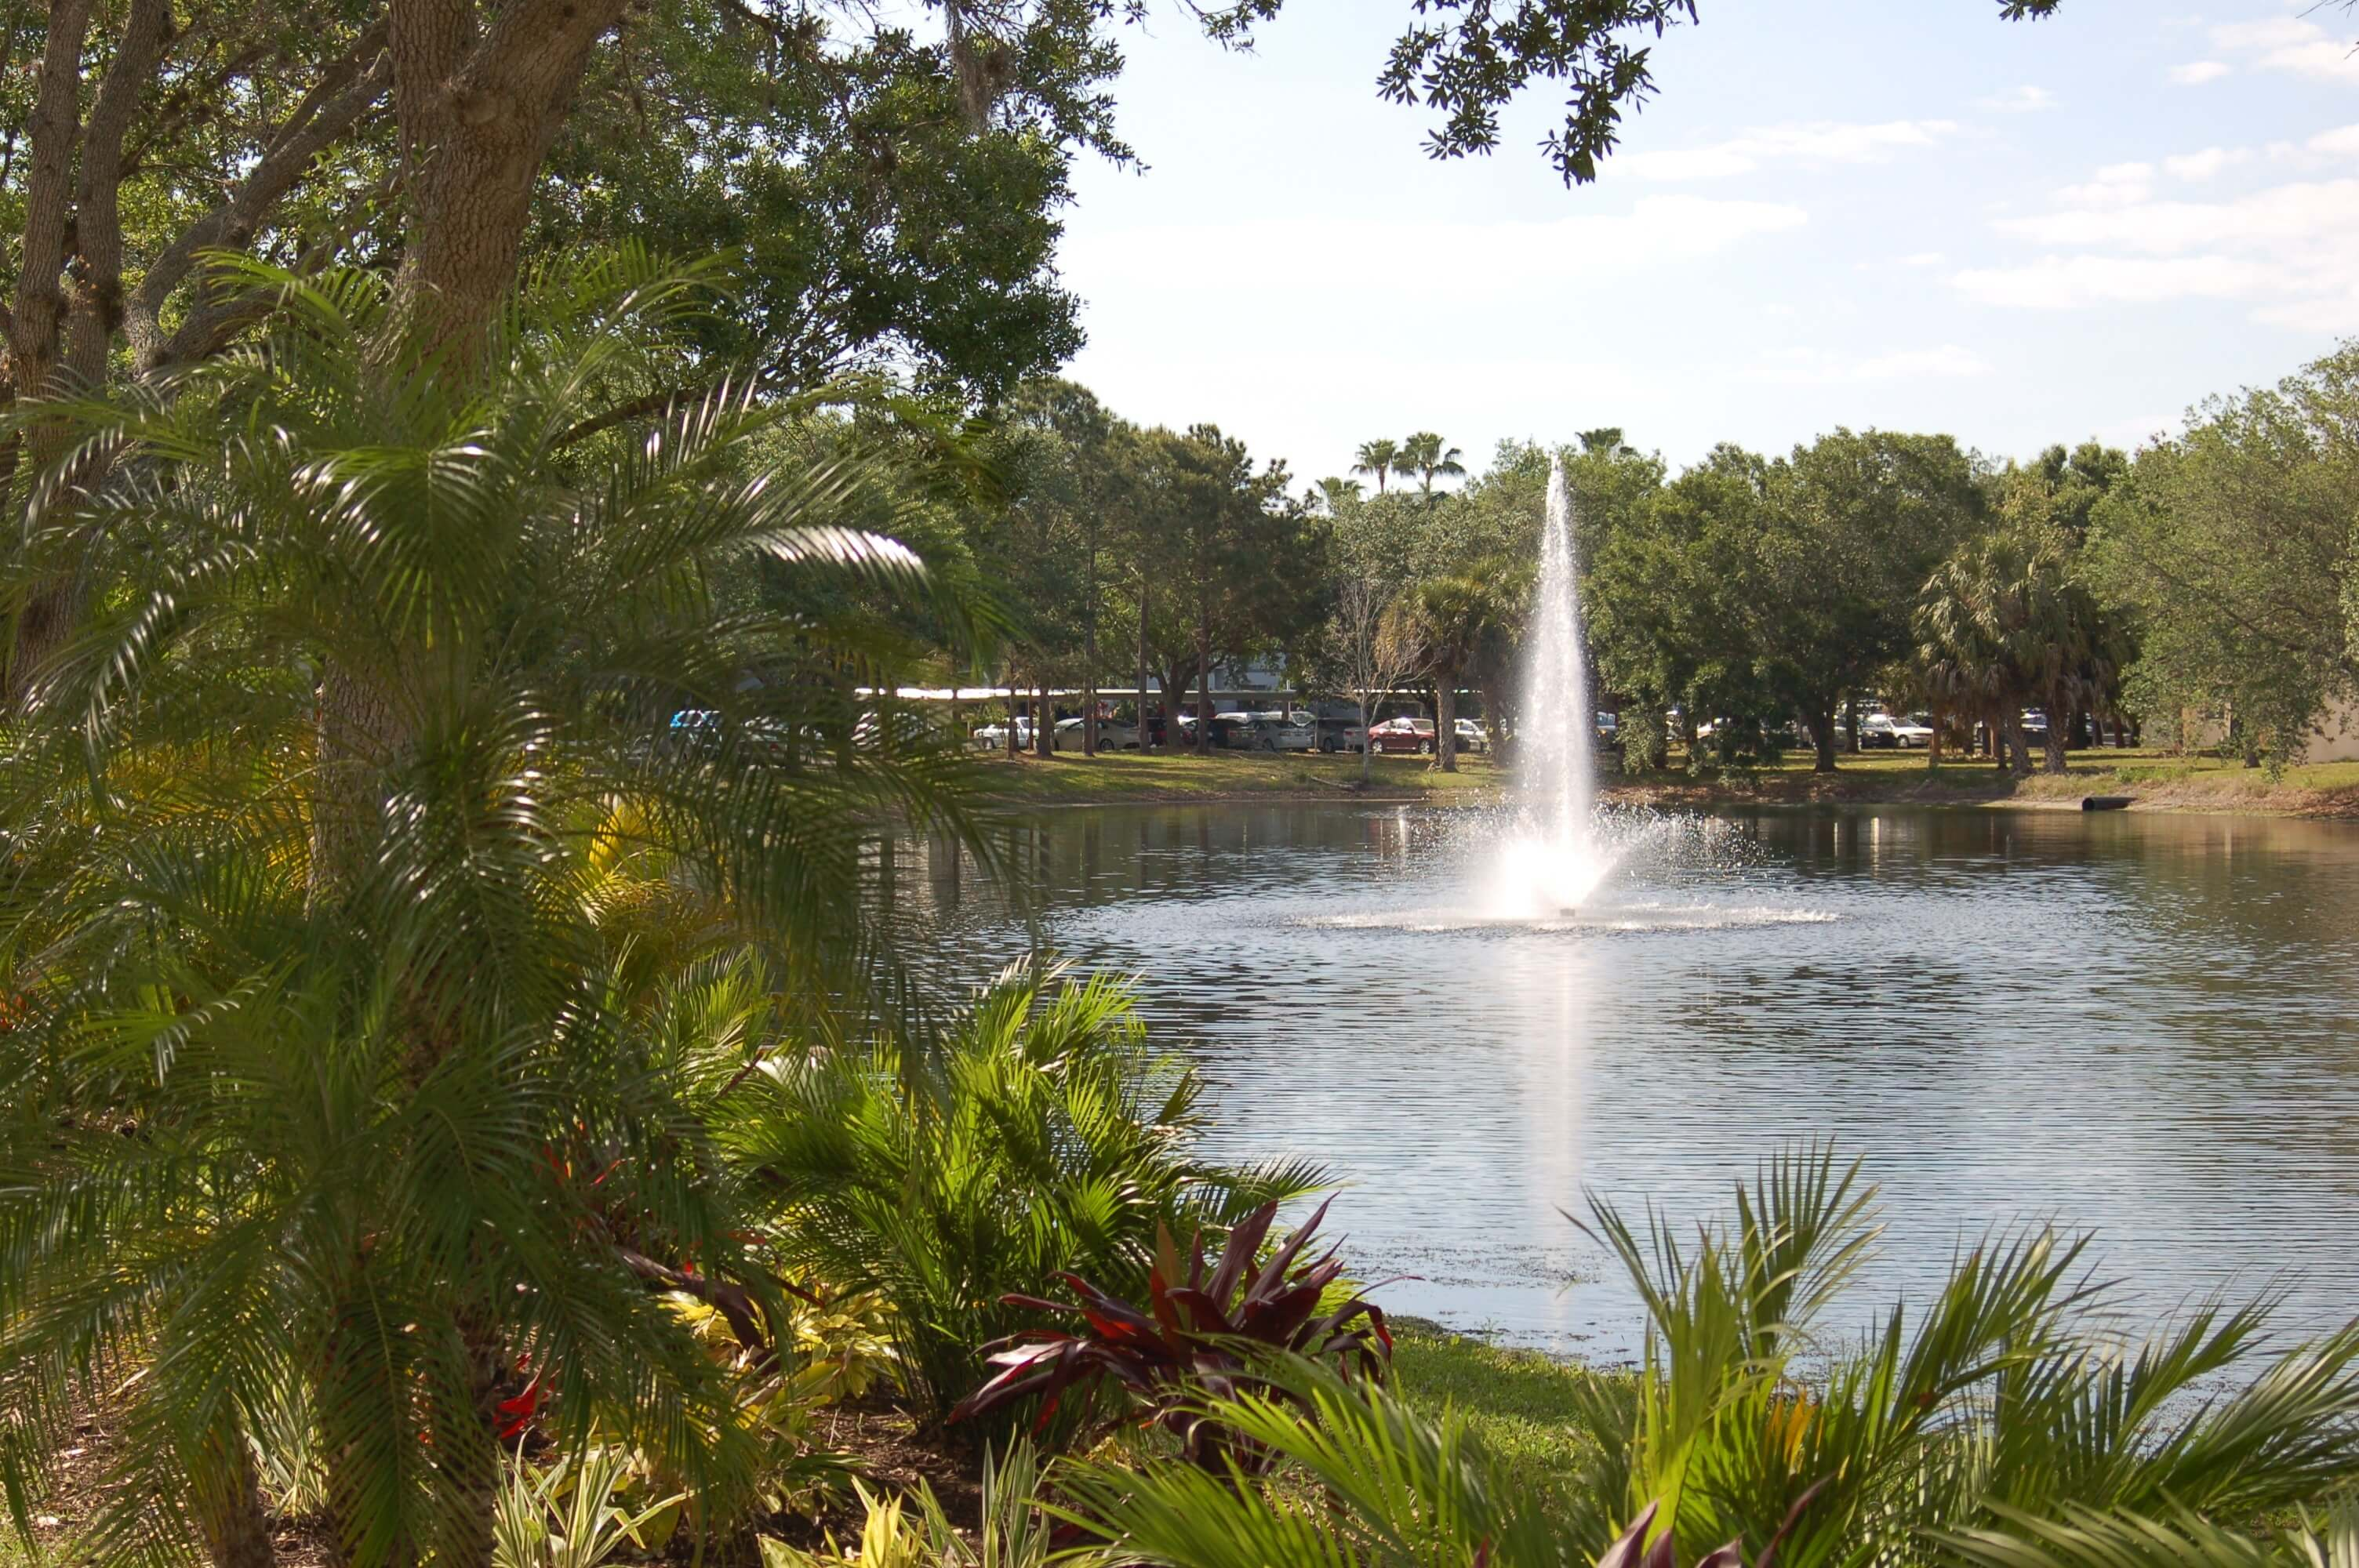 Sarasota Experience ~ Aviva - A Campus for Senior Life